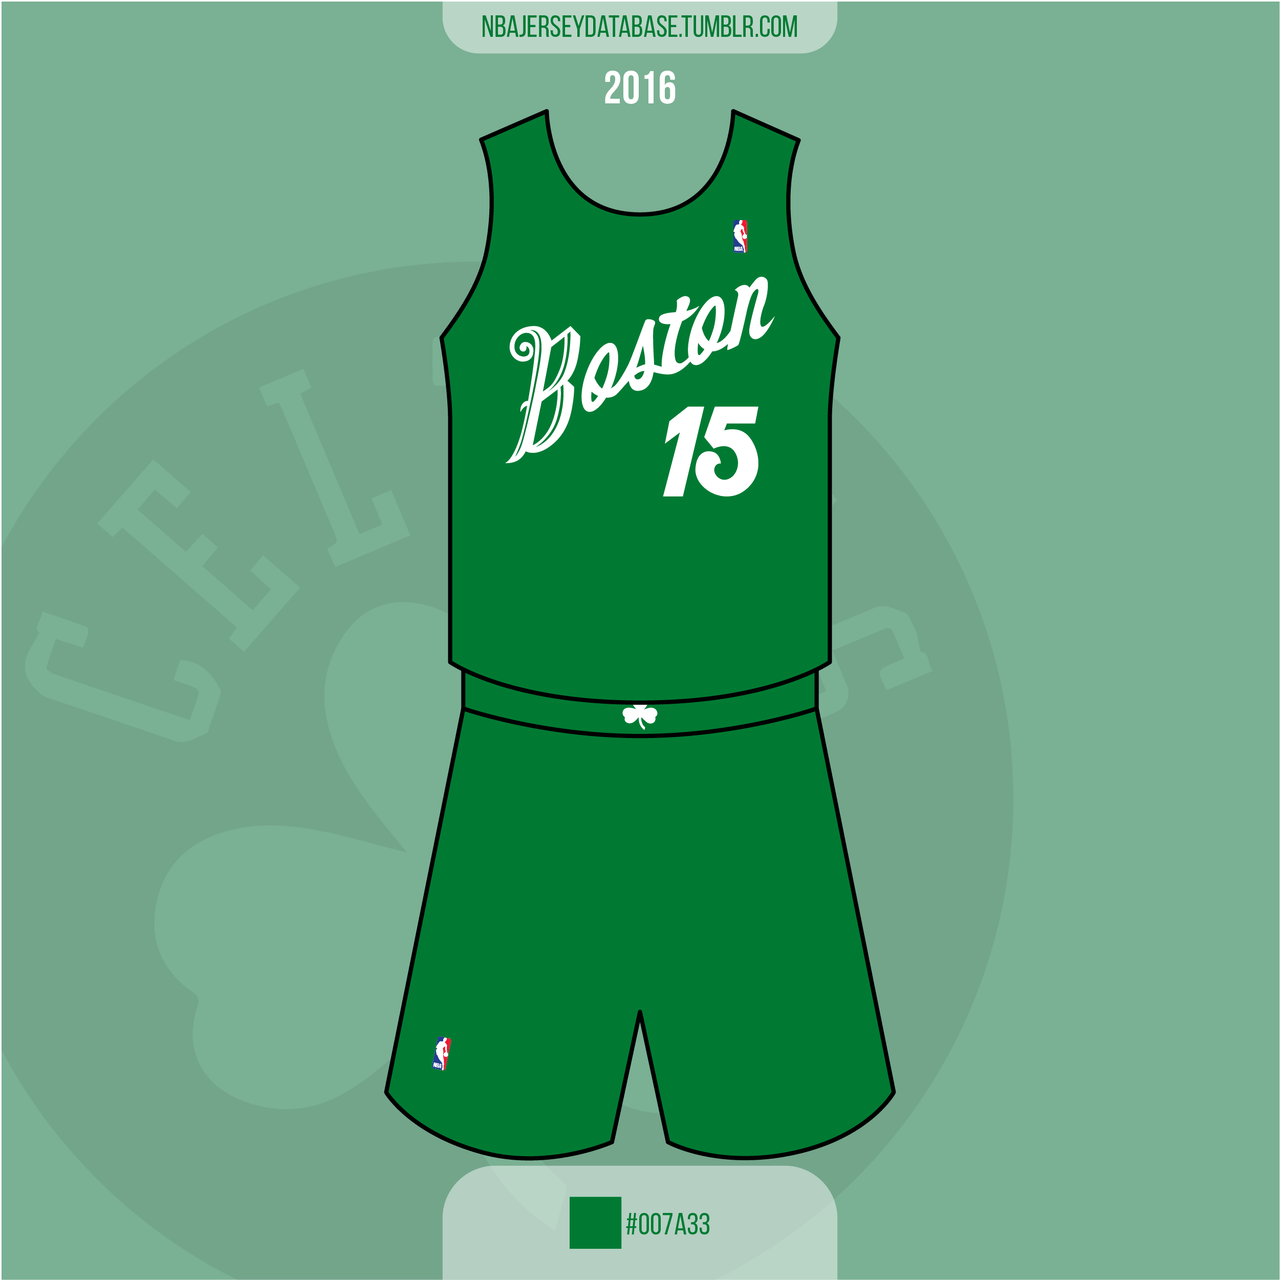 Boston Celtics Christmas Card Jersey 2016